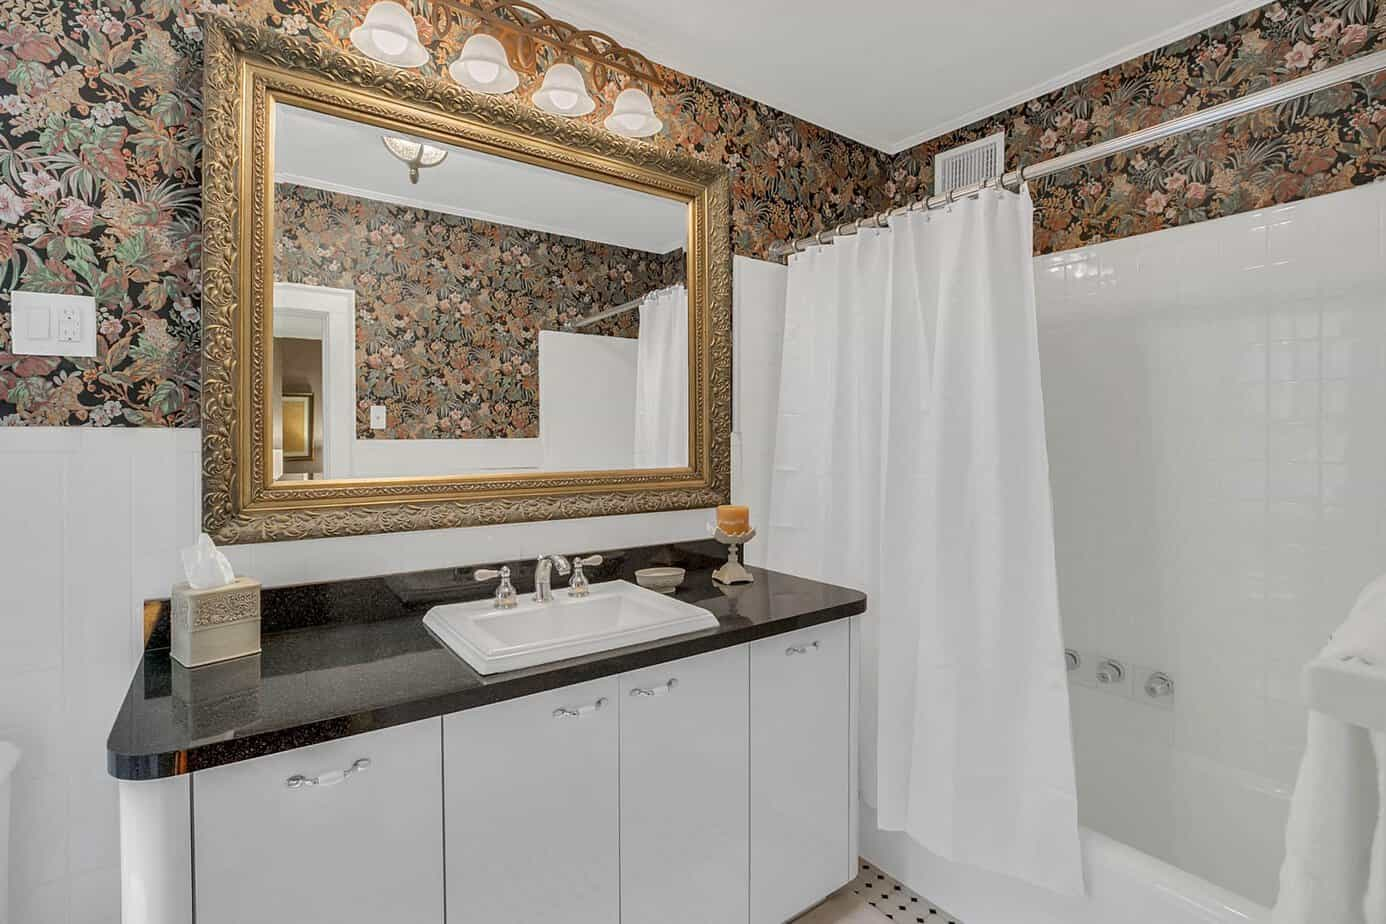 Bathroom with white tub and sink with dark granite, and floral wallpaper for the home for sale at 4024 W Bay to Bay Tampa FL 33629